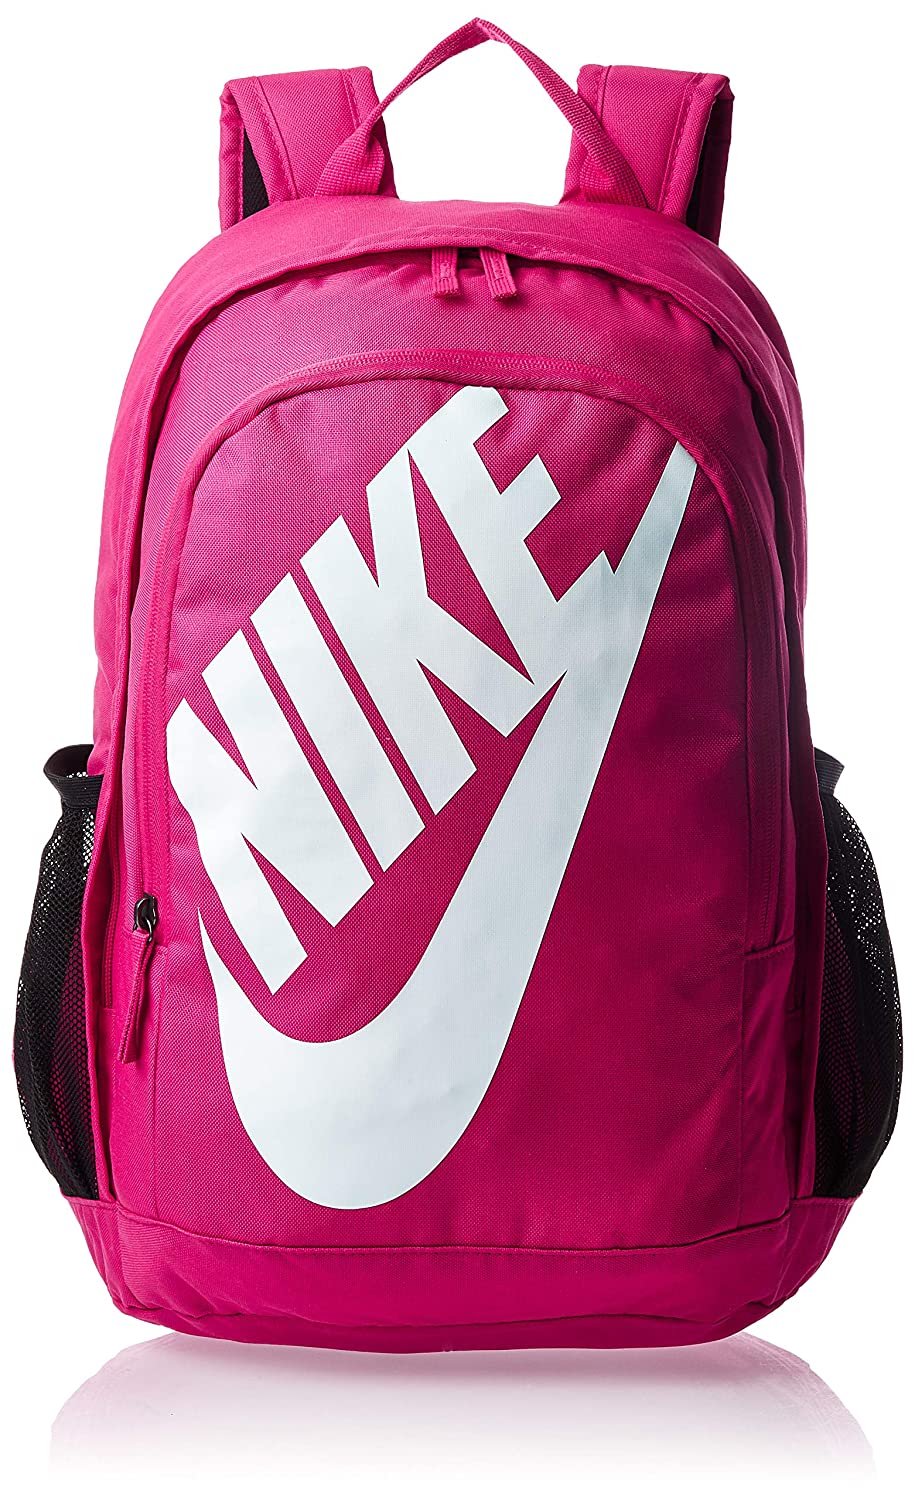 Nike Polyester Pink Backpack